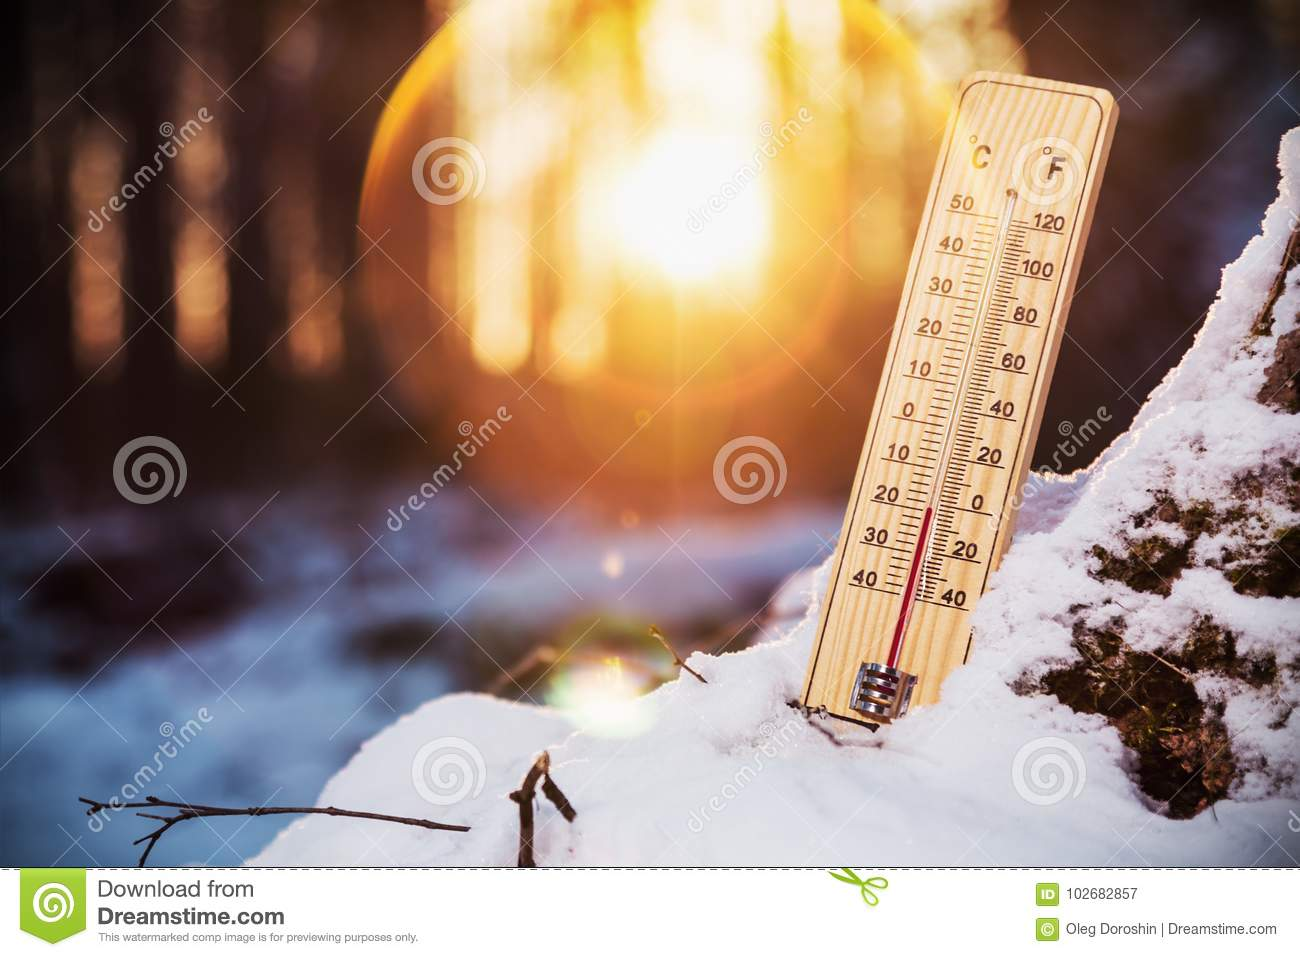 Termometro Con Le Temperature Sotto Zero Immagine Stock Immagine Di Vetro Clima 102682857 La neve è caduta in quasi tutti i comuni in tutta la zona intorno a fiuggi, formando uno strato di oltre trenta centimetri a filettino. https it dreamstime com termometro con le temperature sotto zero image102682857